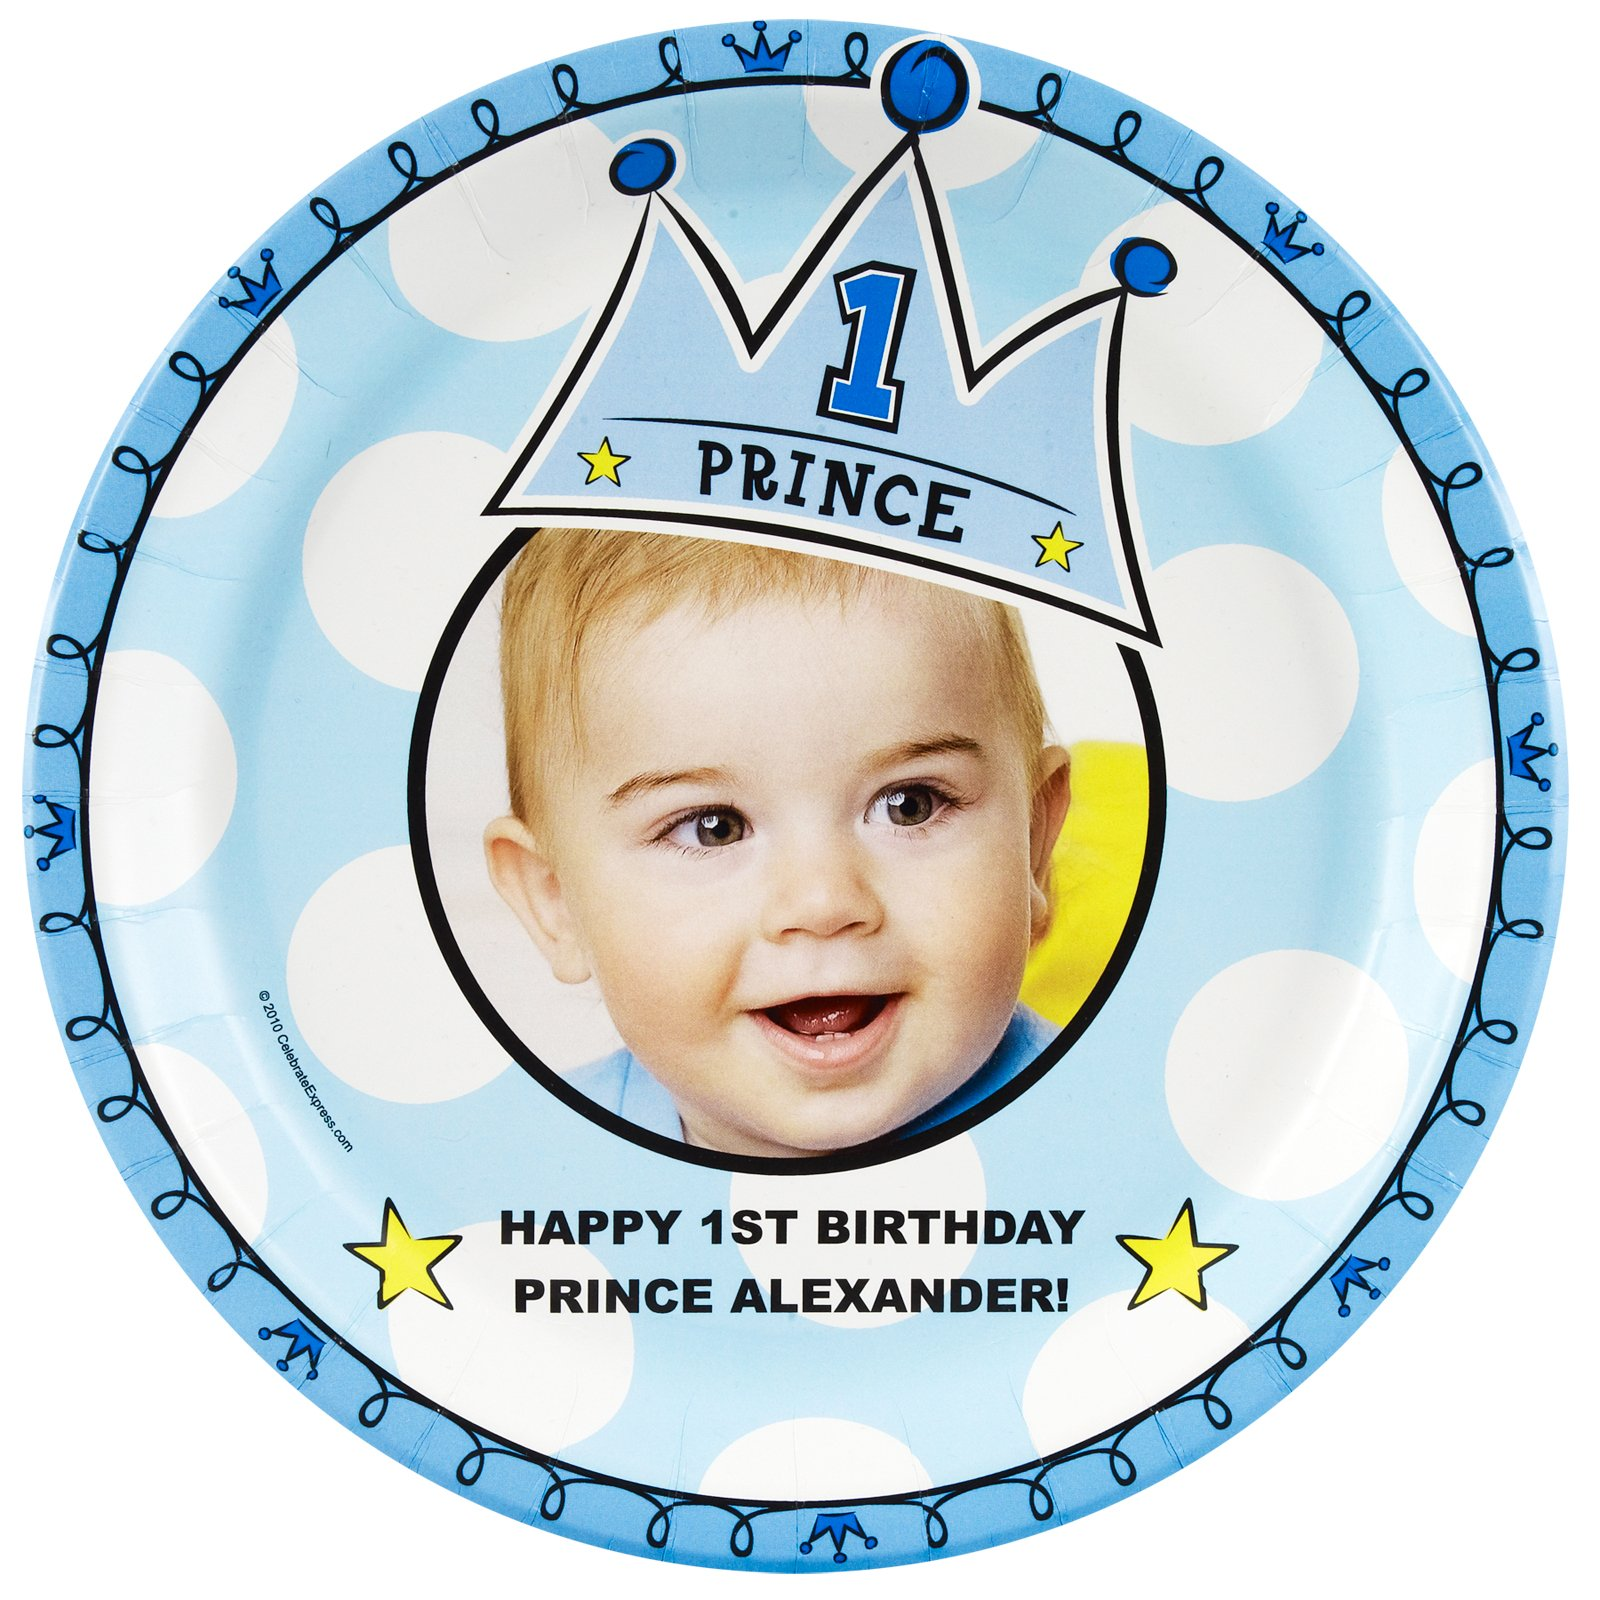 Birthdayexpress creates new online department for first birthdays lil prince 1st birthday personalized party supplies filmwisefo